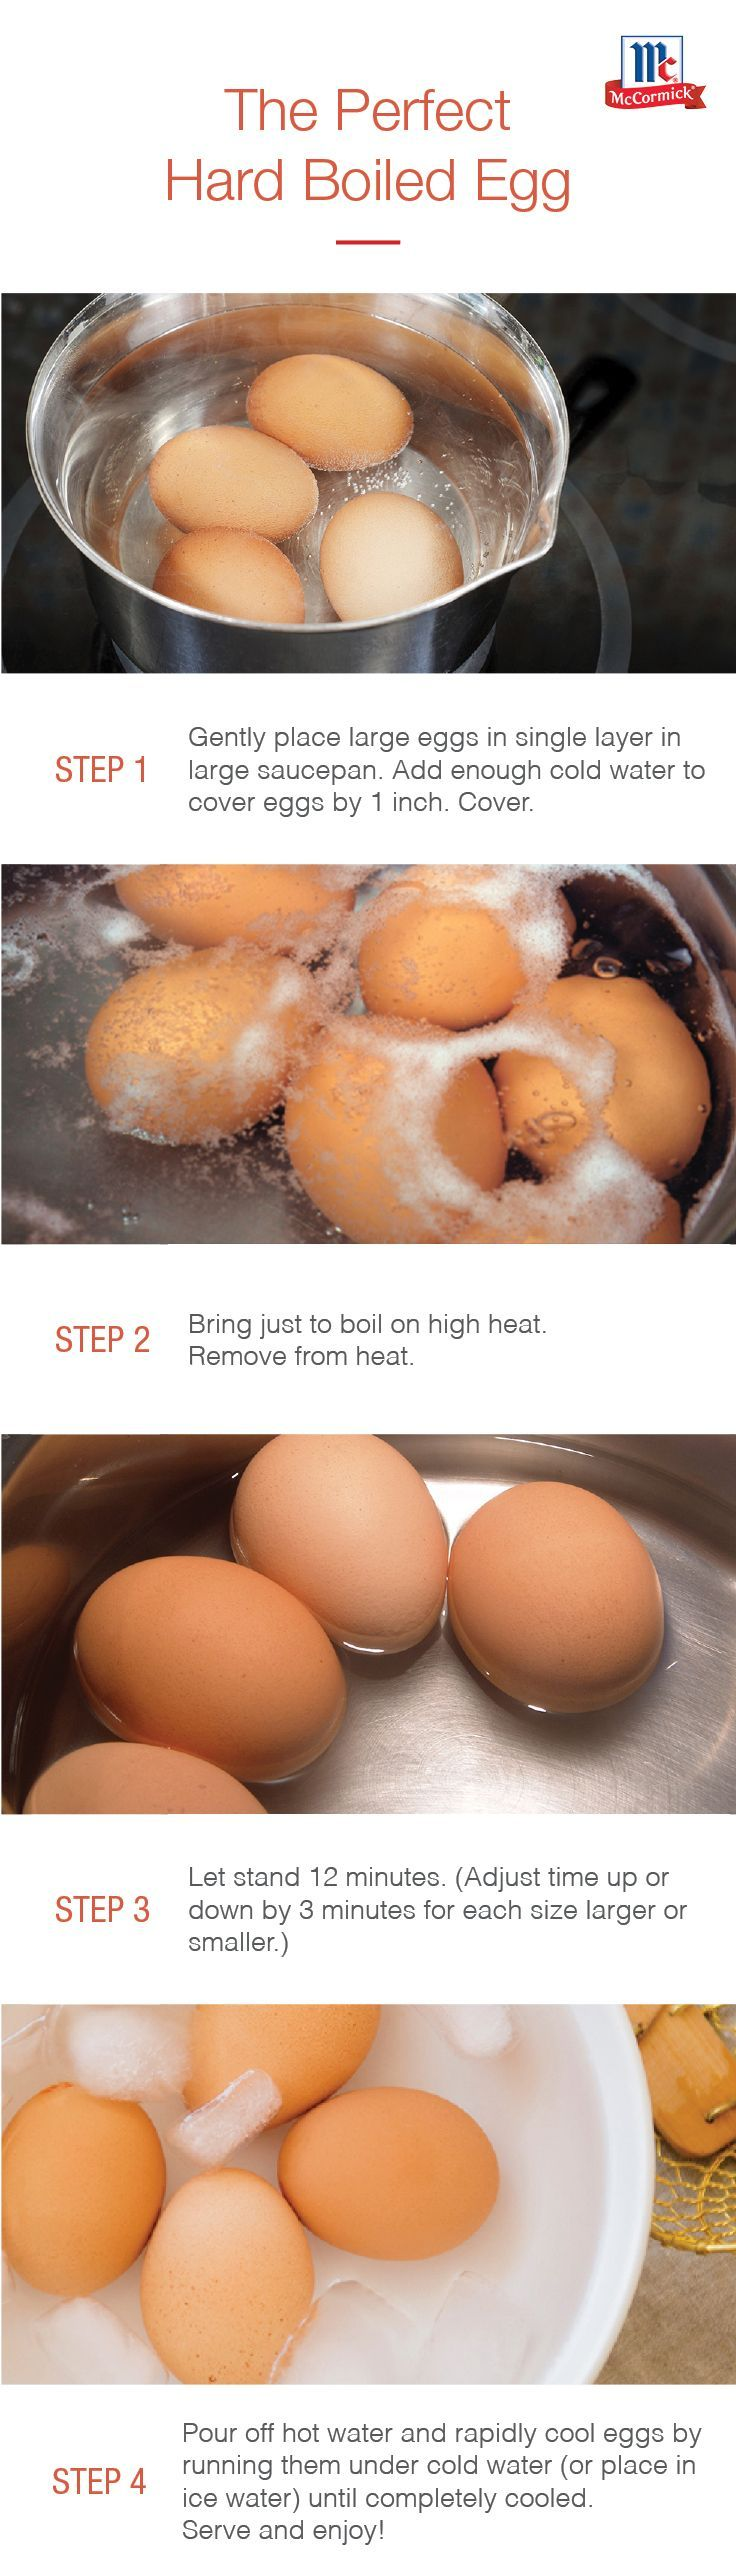 Looking for how to make perfect hard boiled eggs? Follow these no-fail instructions for the perfect eggs for dyeing, devil-ing and more. Hint: it's as easy as boiling water.